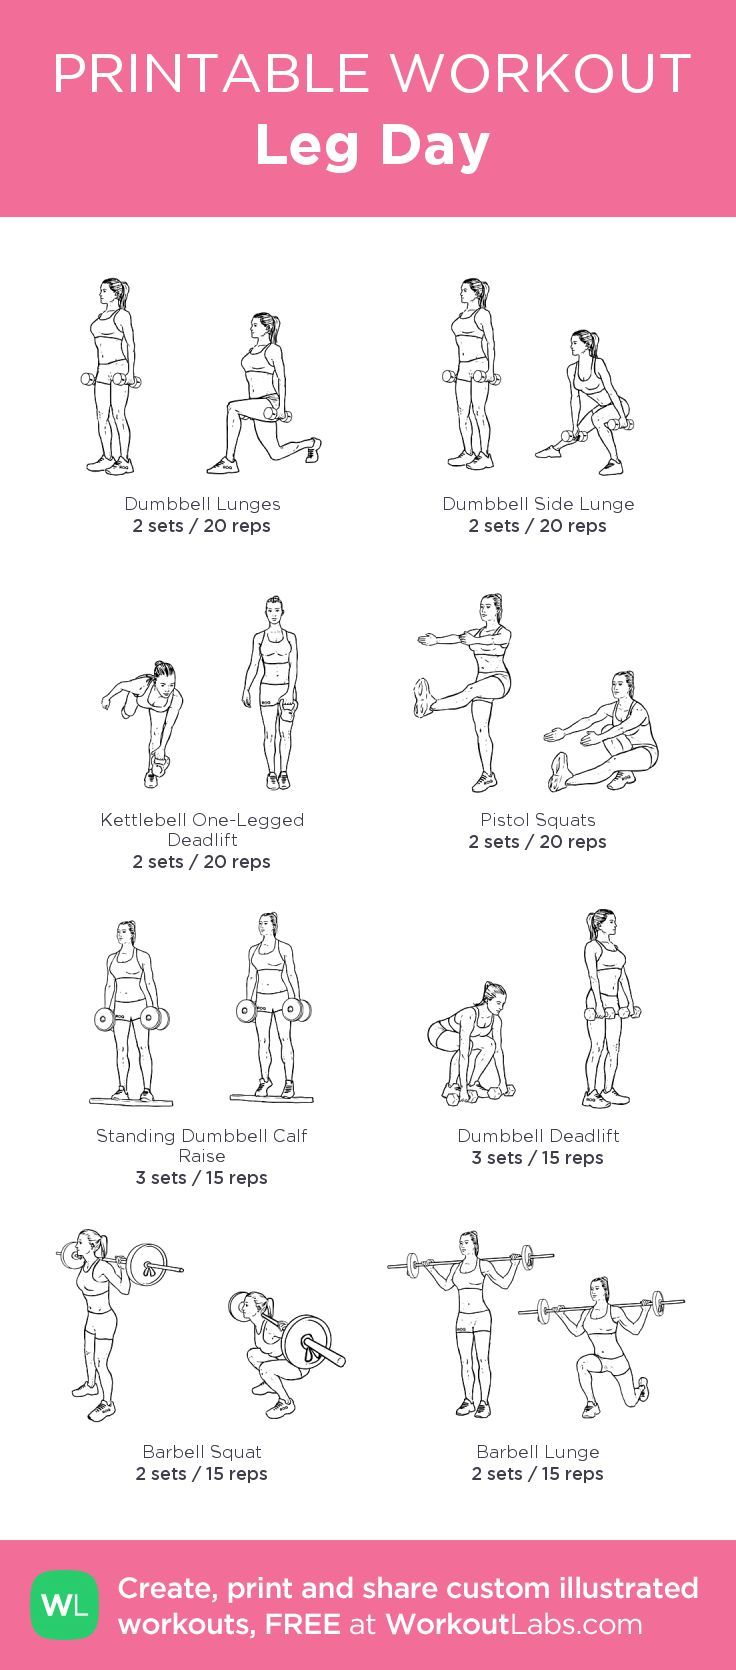 7-Day At-Home Ab Workout Routine 7-Day At-Home Ab Workout Routine new photo